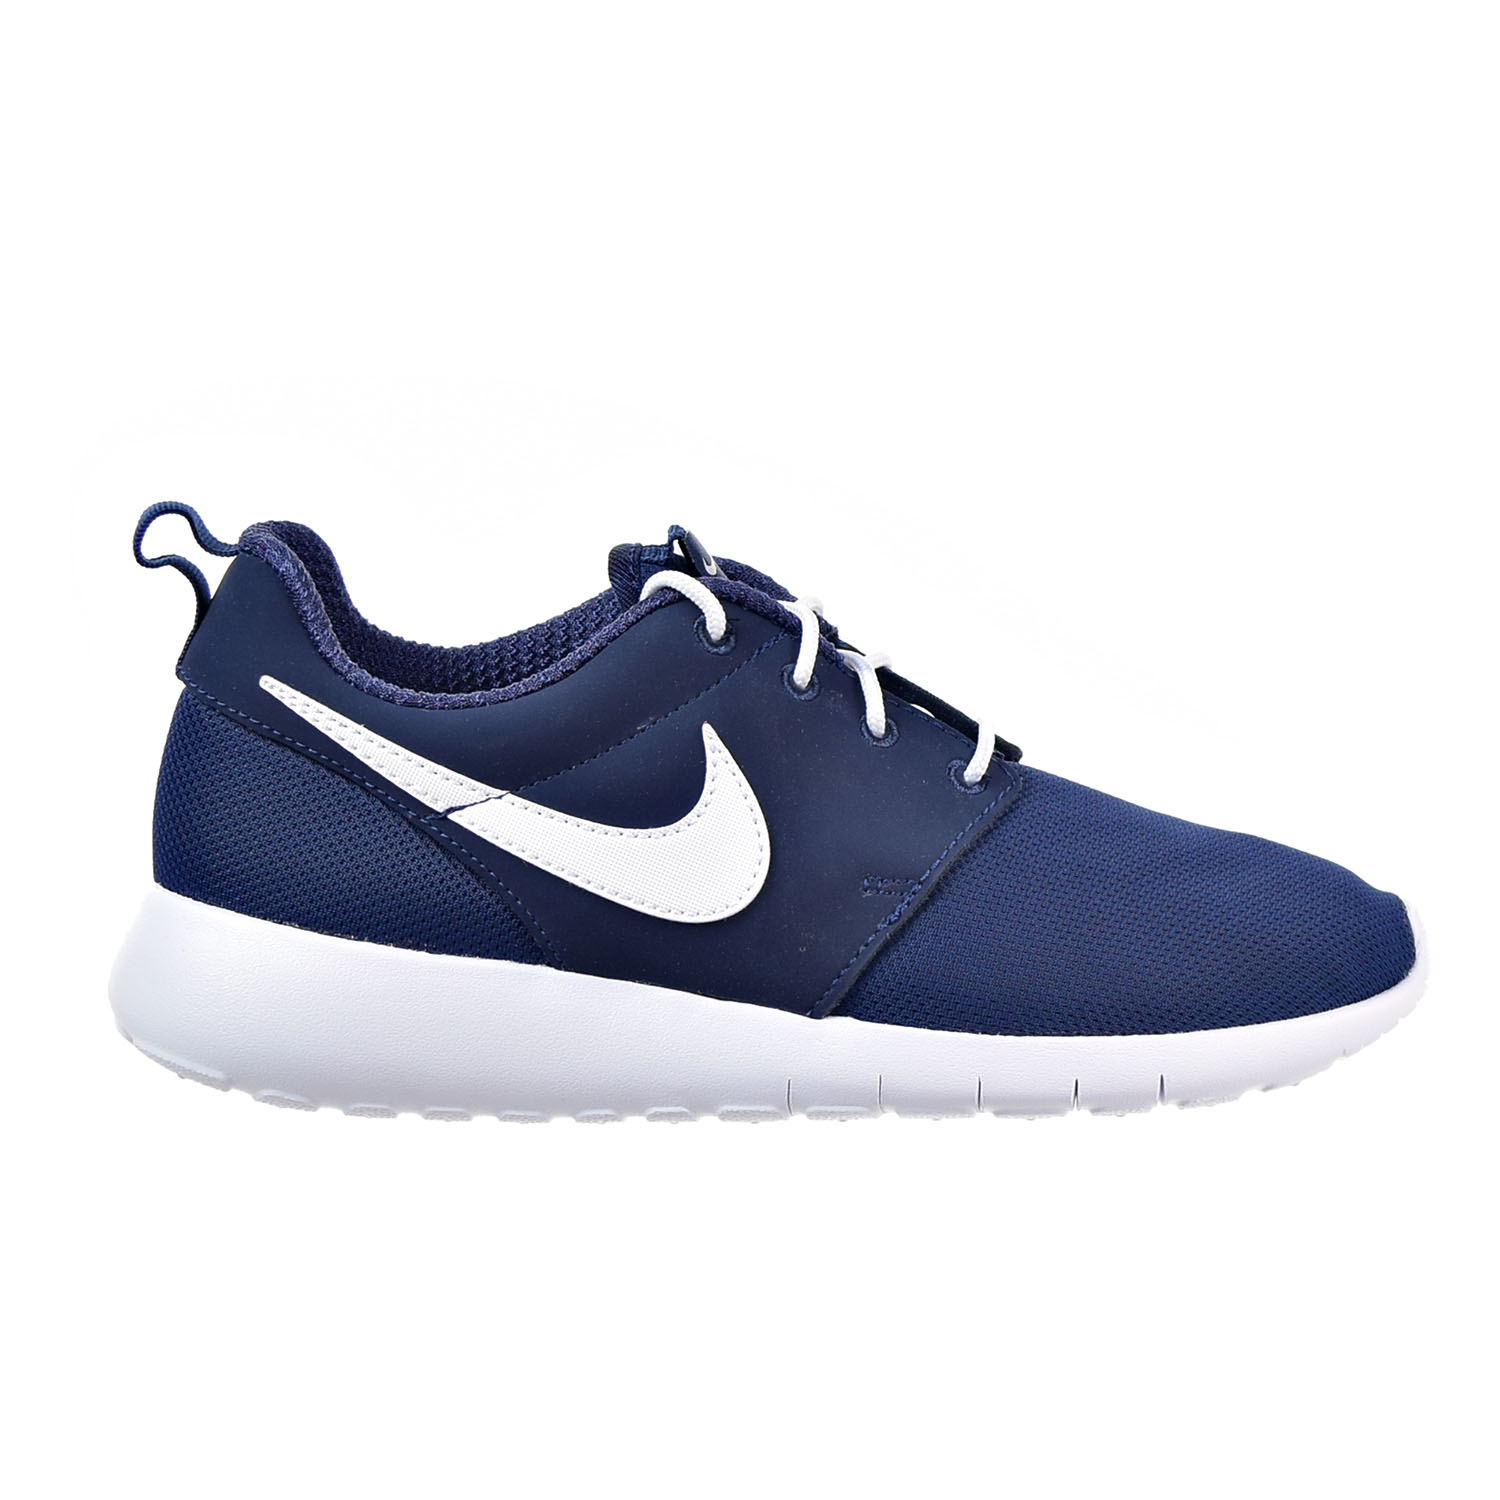 detailed look 0d027 4fa25 ... norway nike roshe one gs big kids shoes midnight navy white 599728 416  6d9e0 cc595